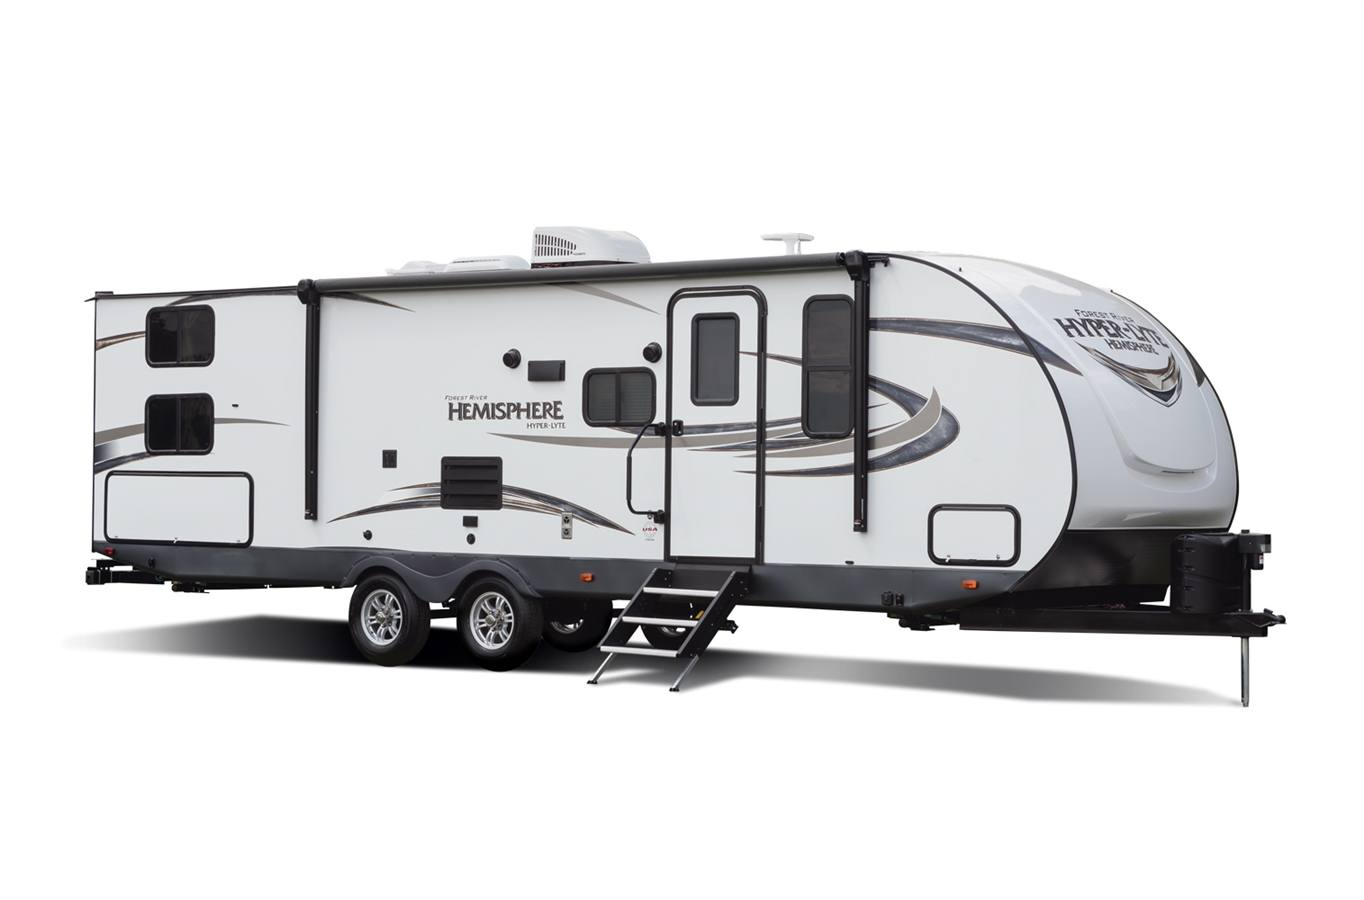 2019 salem by forest river 28bhhl salem hemisphere hyper-lyte fifth wheels